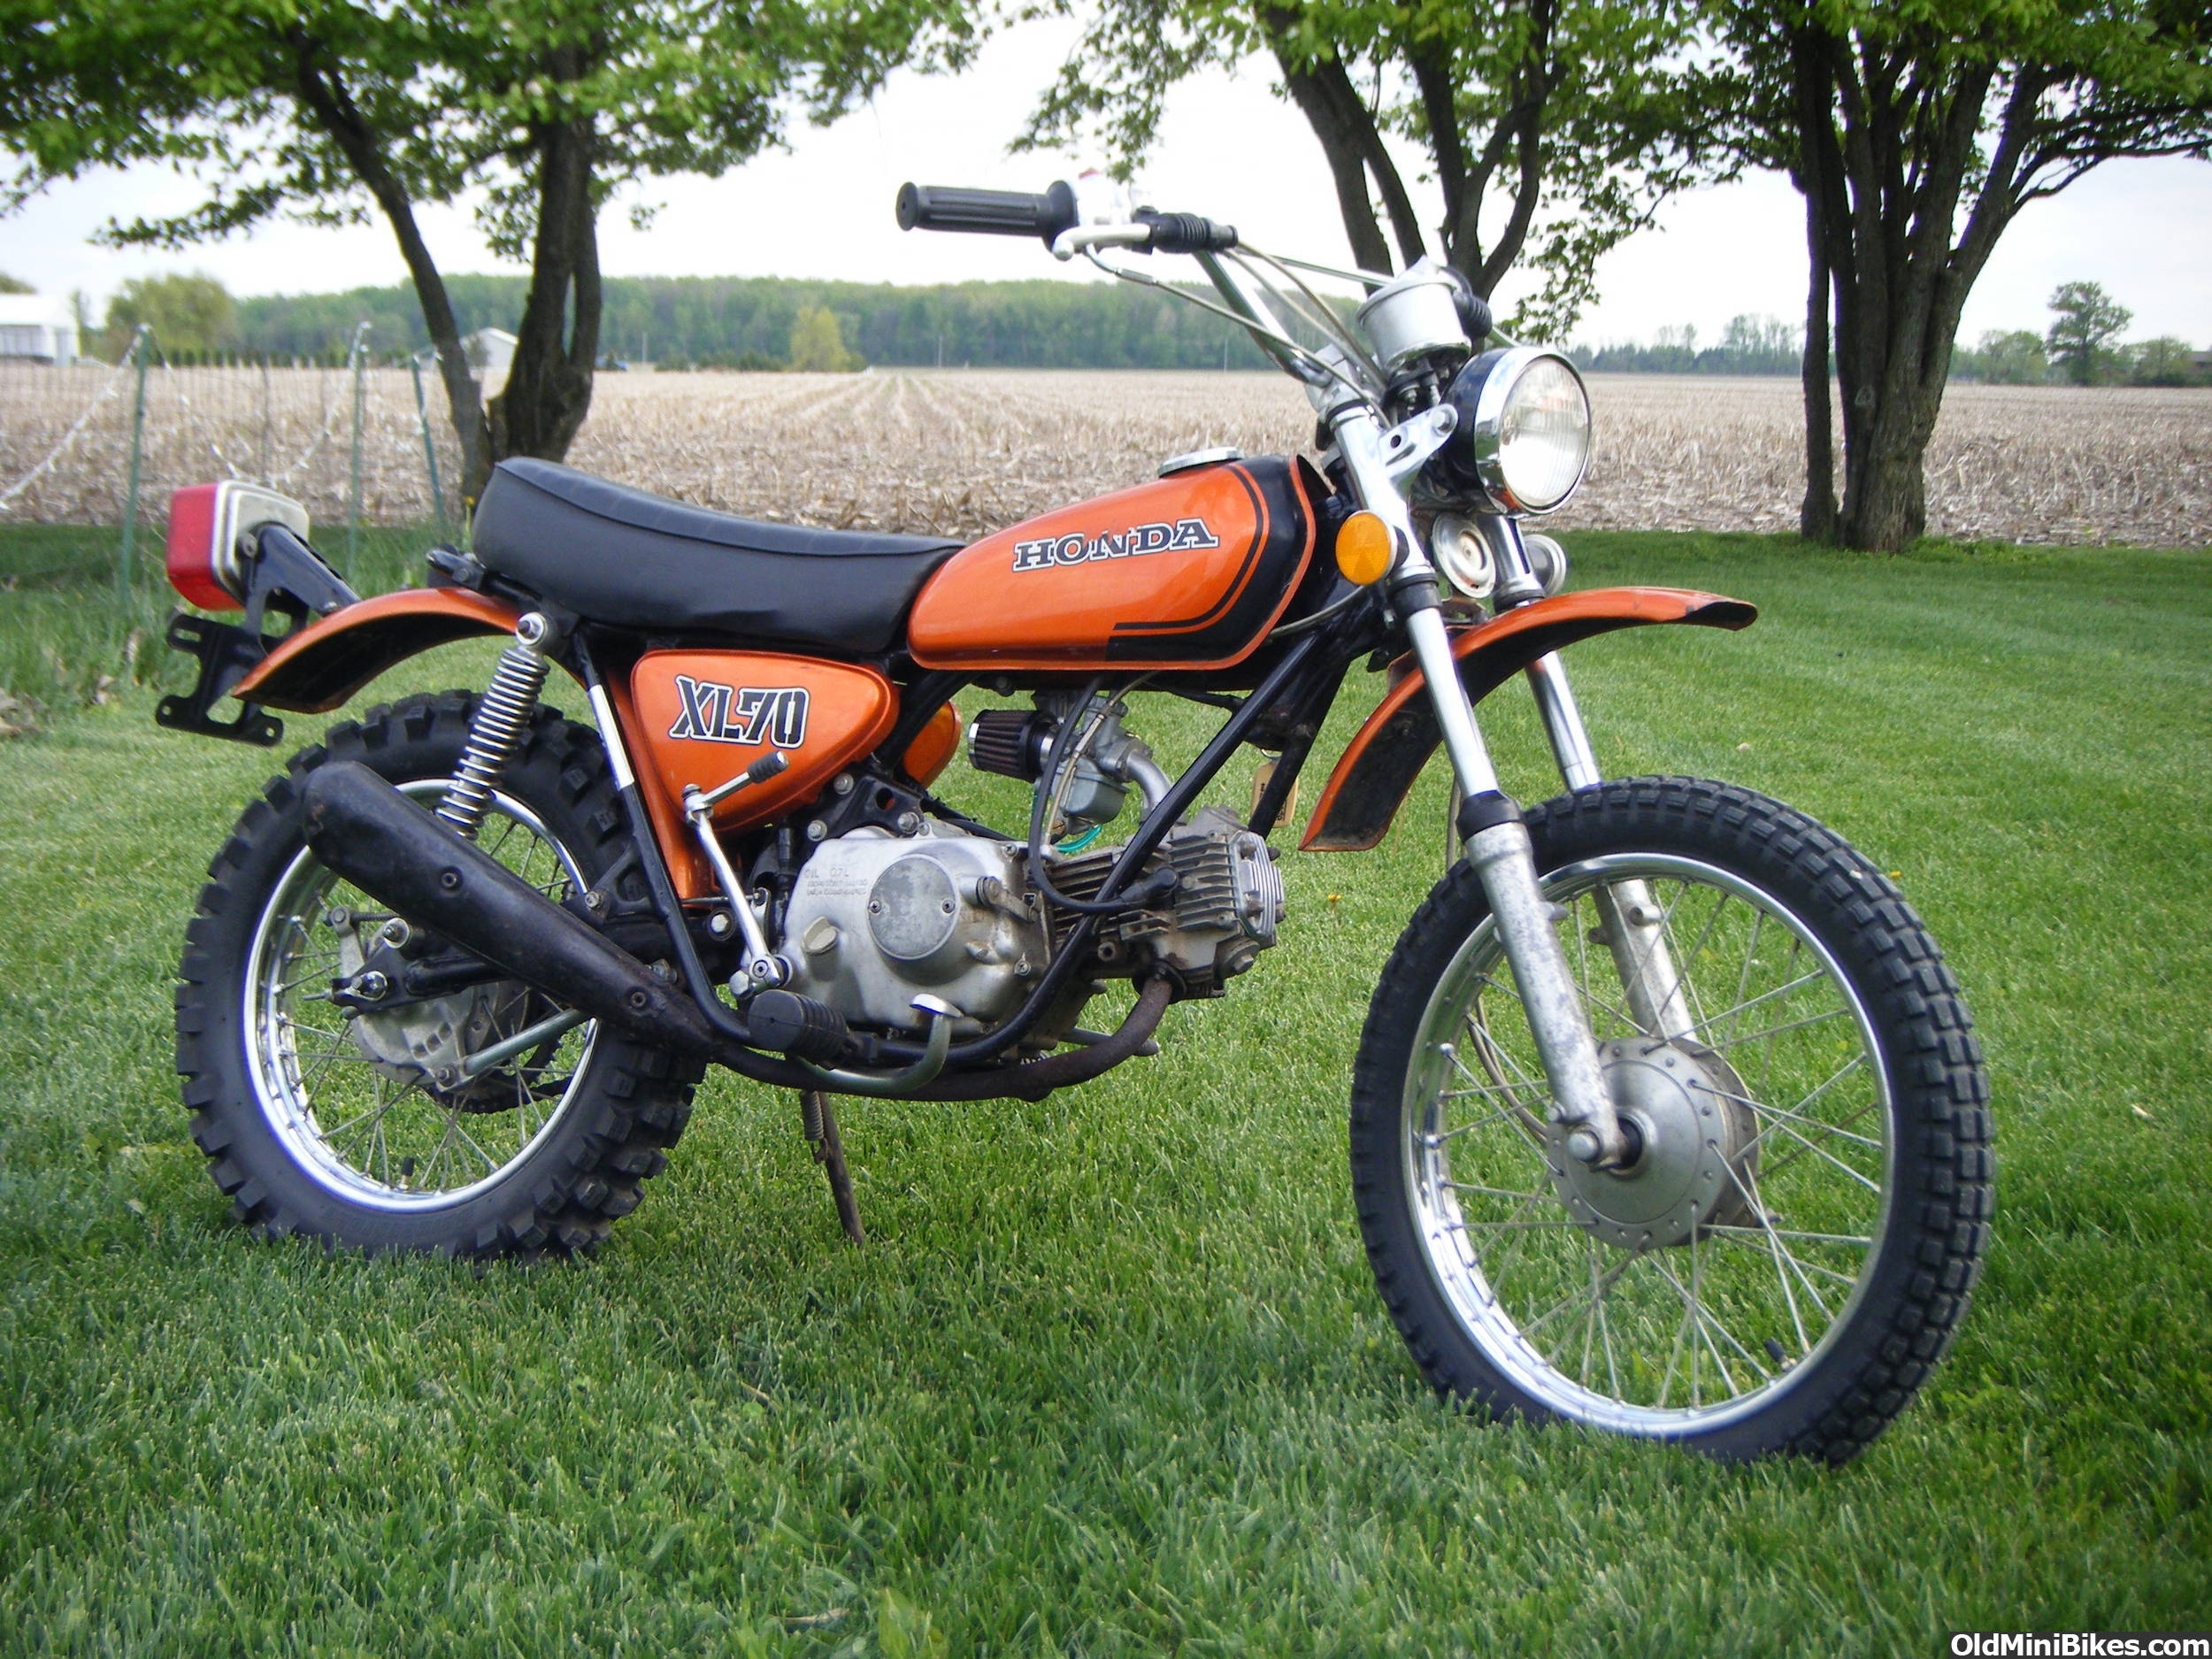 List of Synonyms and Antonyms of the Word: 1972 Honda Xl70